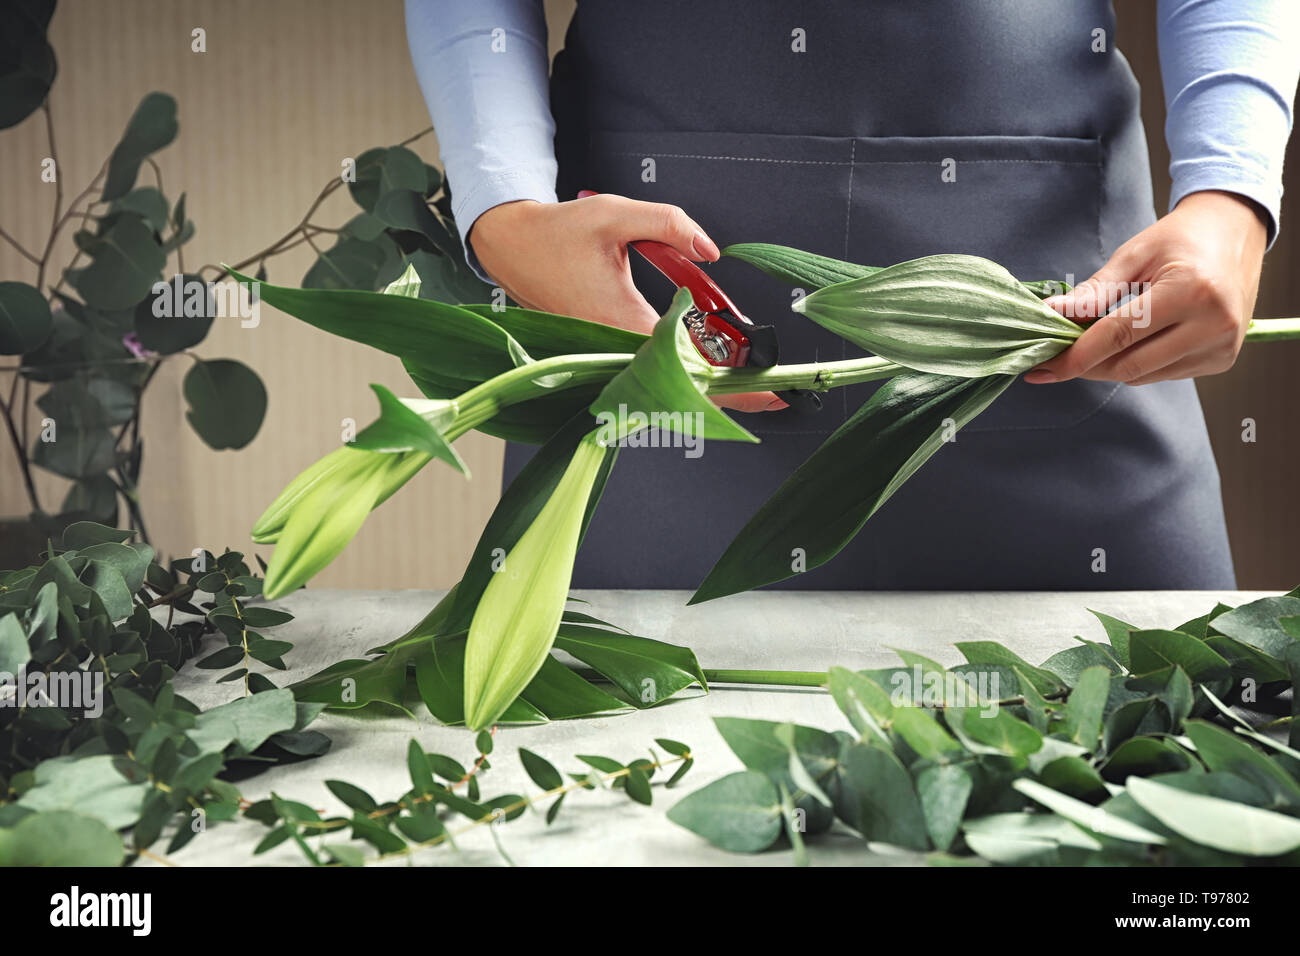 Florist making beautiful bouquet at table - Stock Image